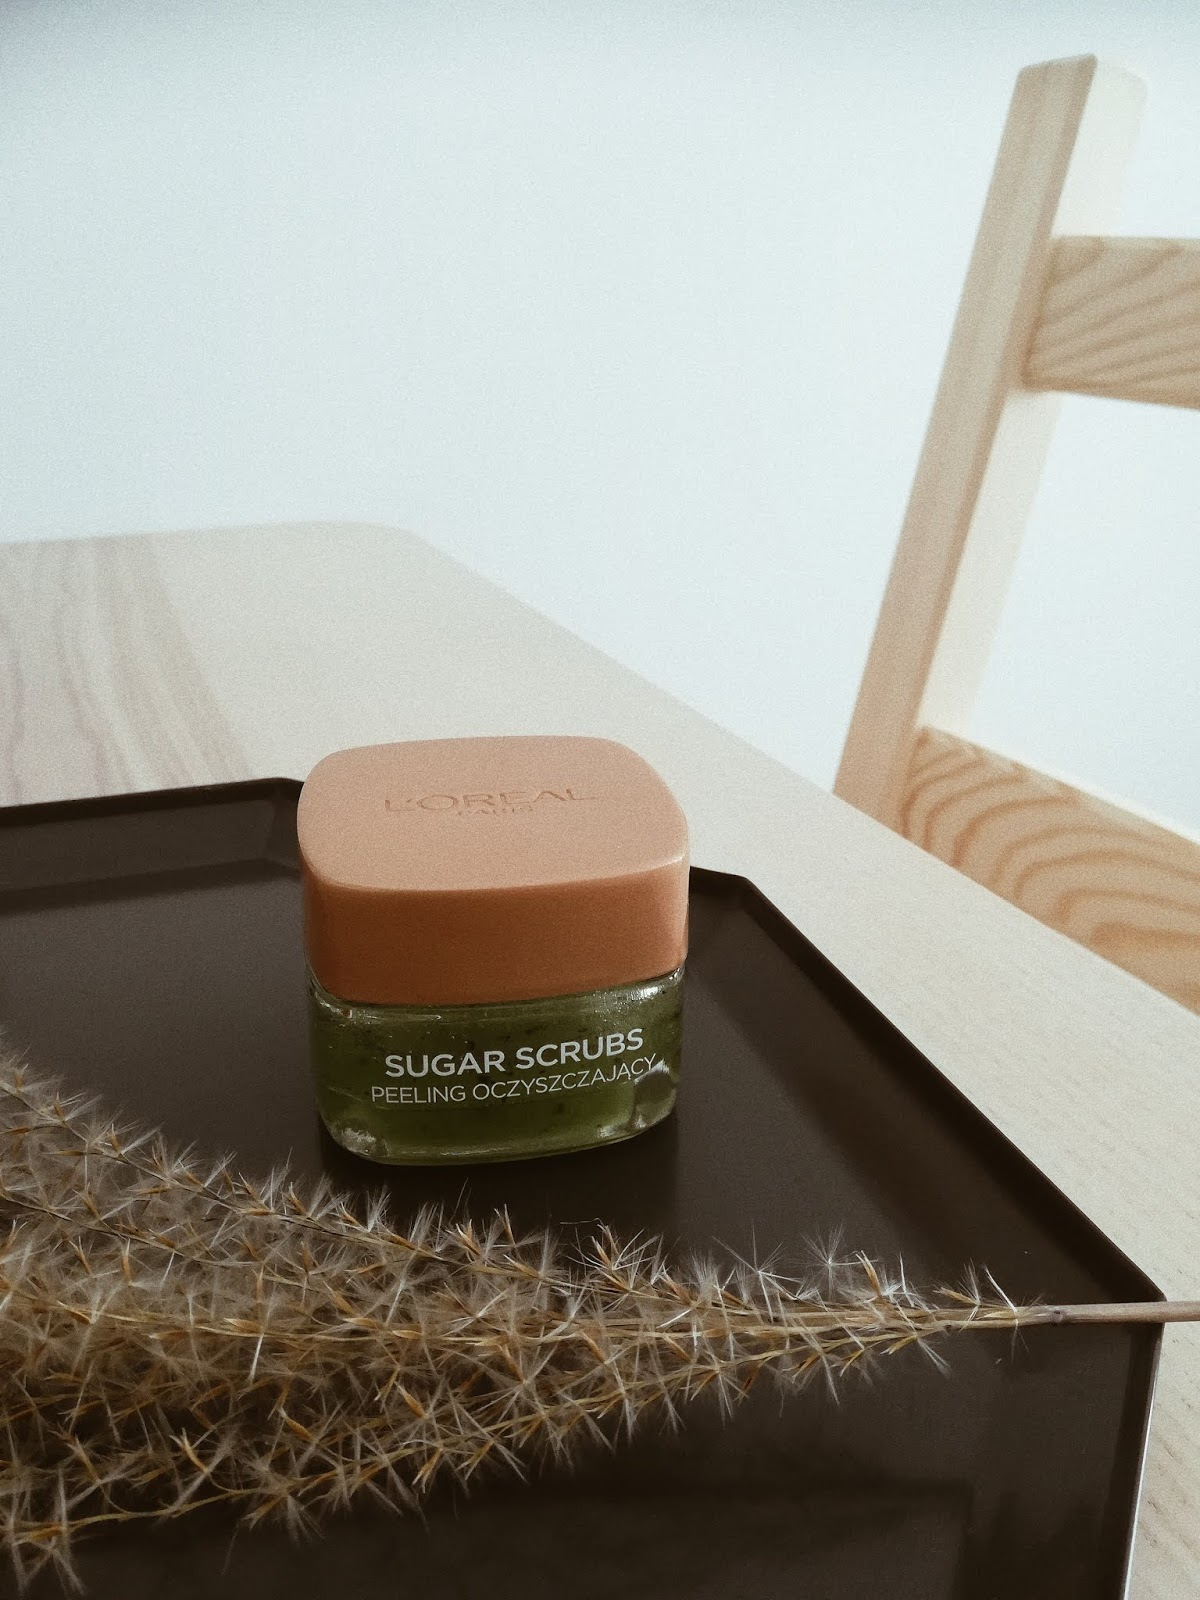 KIWI SUGAR SCRUBS LOREAL PARIS